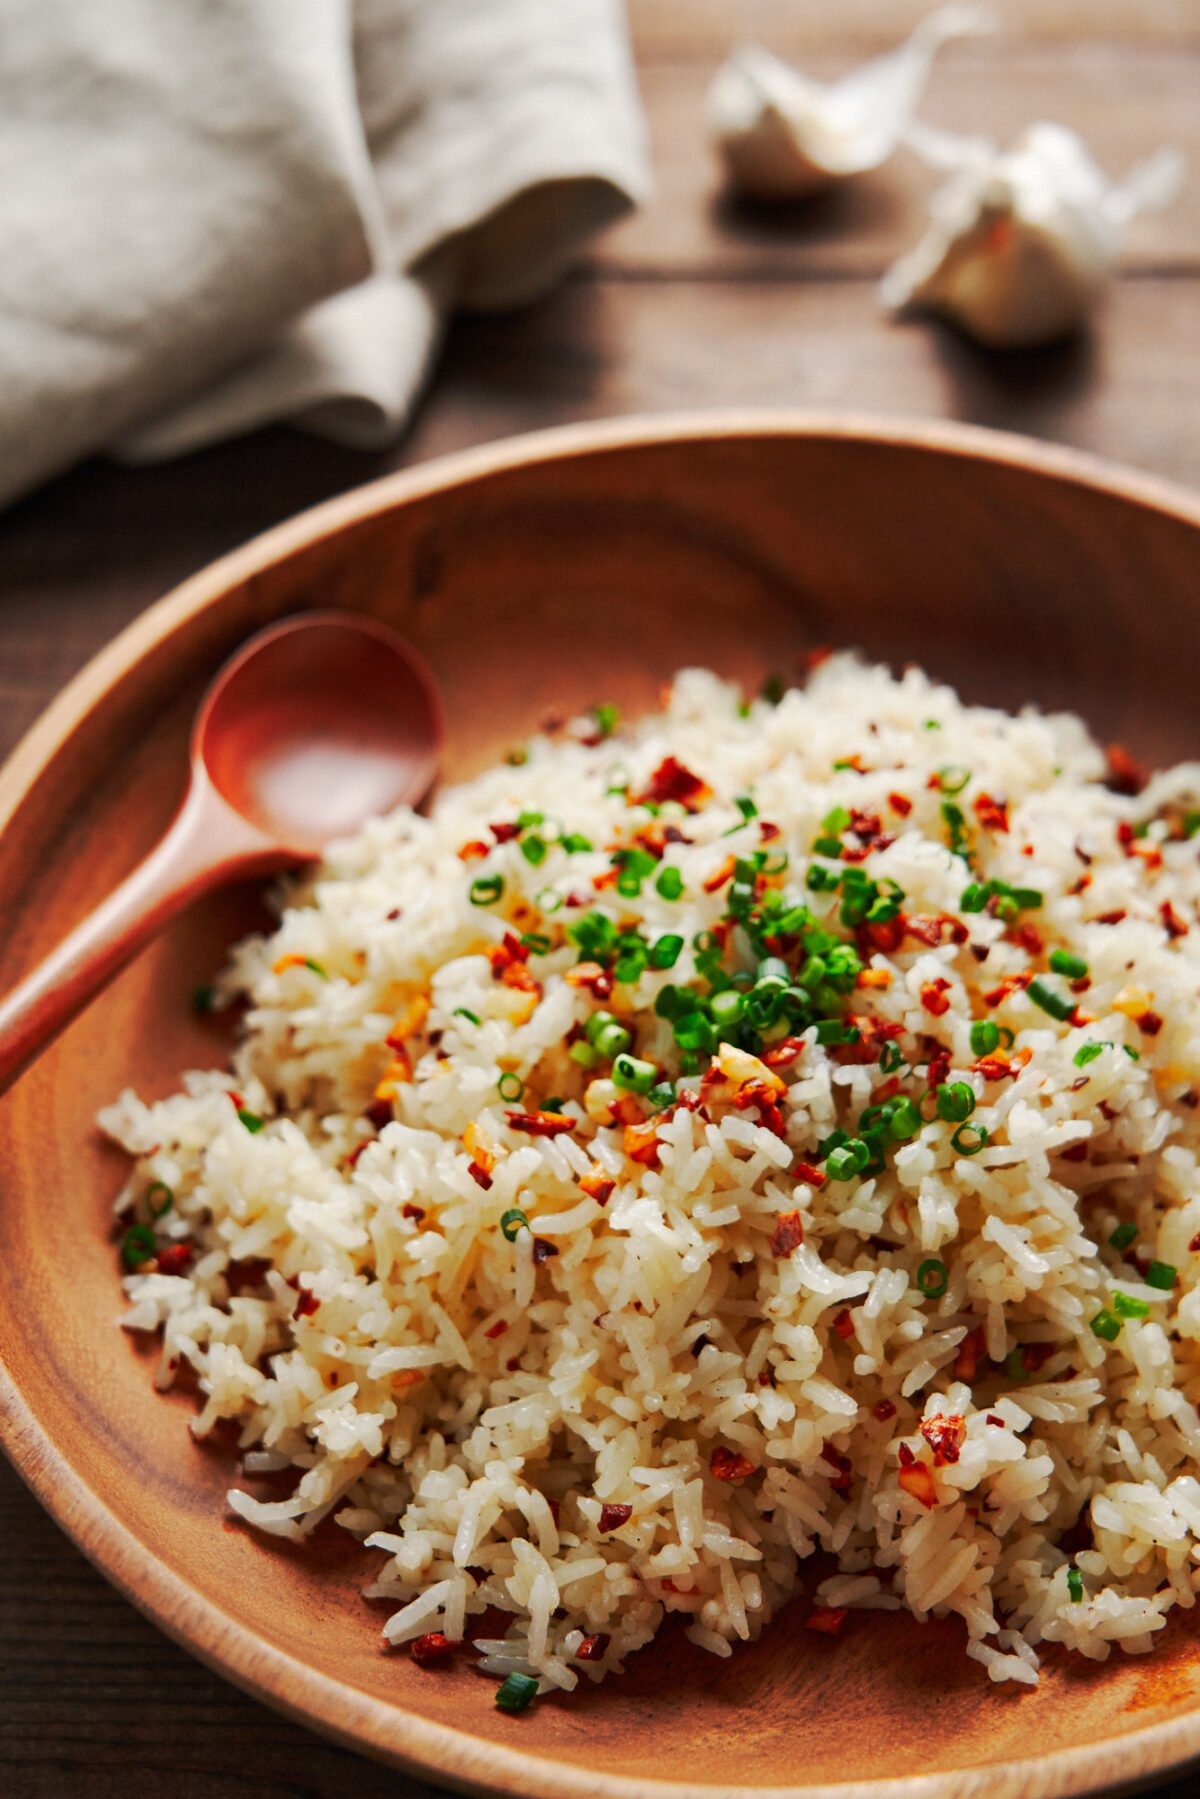 With loads of crispy fried garlic, this 3-ingredient Filipino garlic fried rice recipe is the perfect side for any meal.